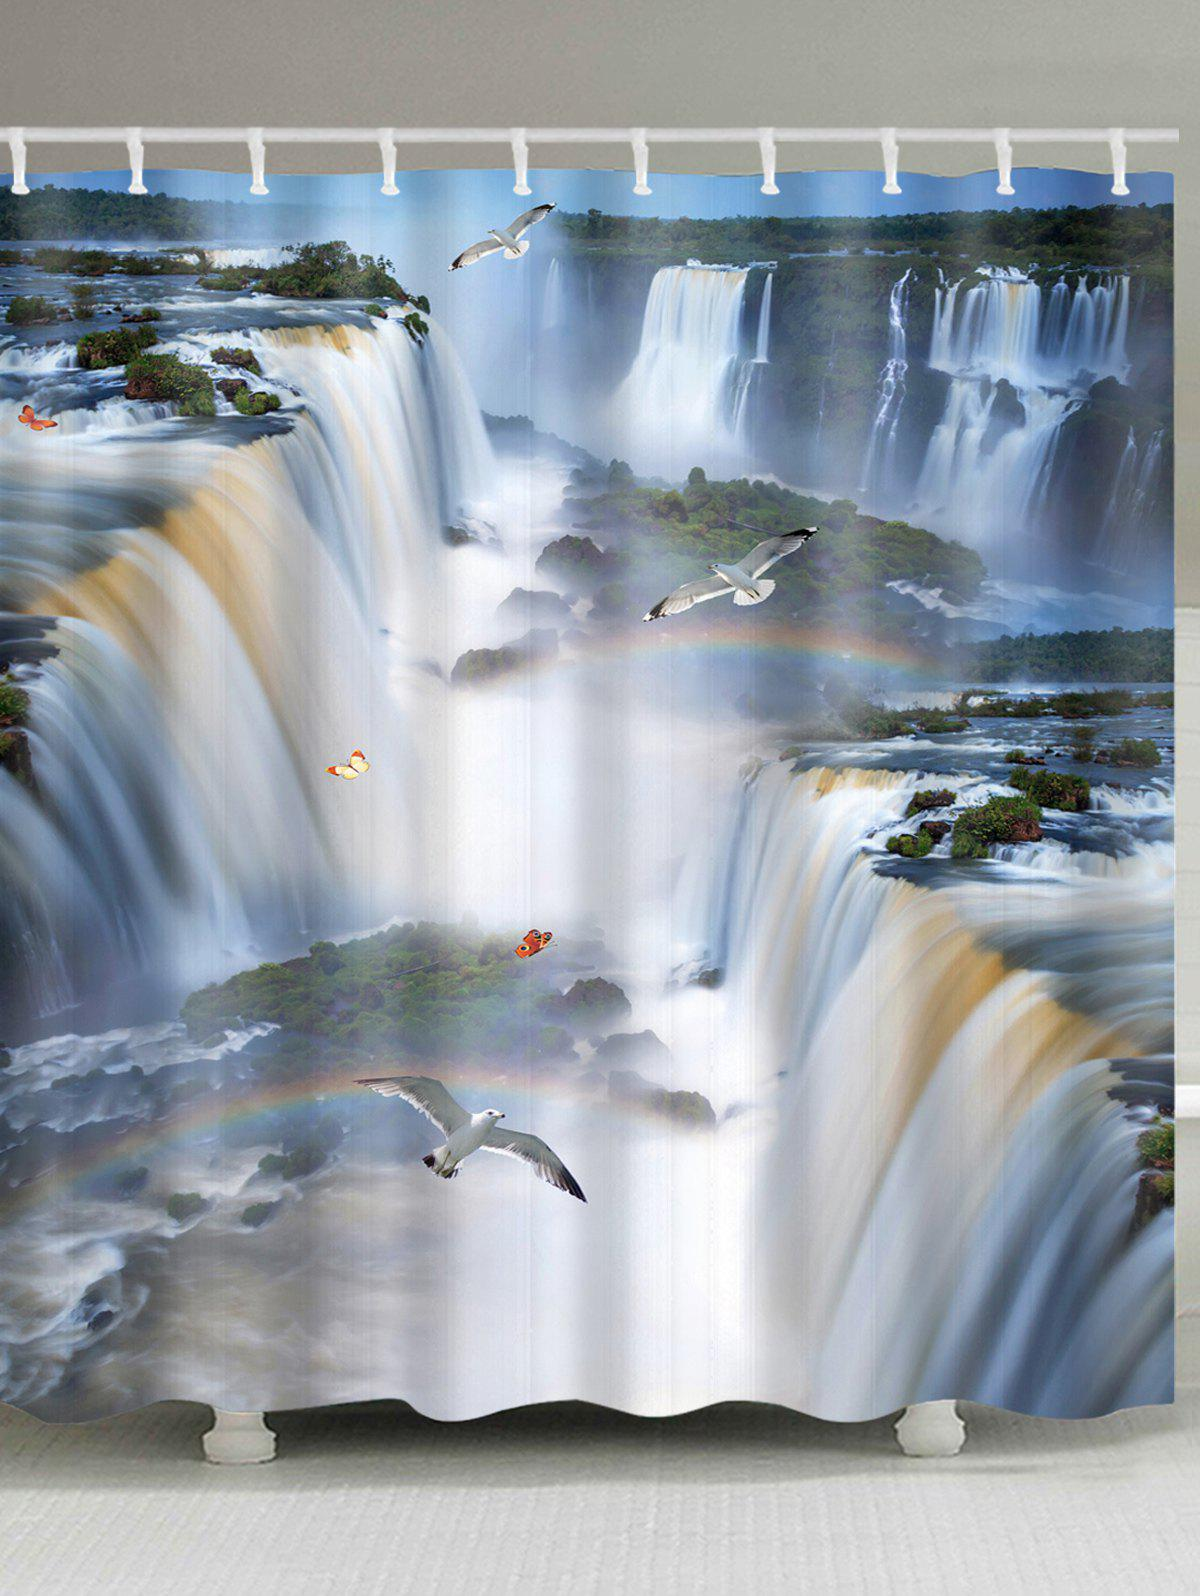 3D Natural Waterfalls Scenery Print Shower Curtain - multicolor A W59 INCH * L71 INCH